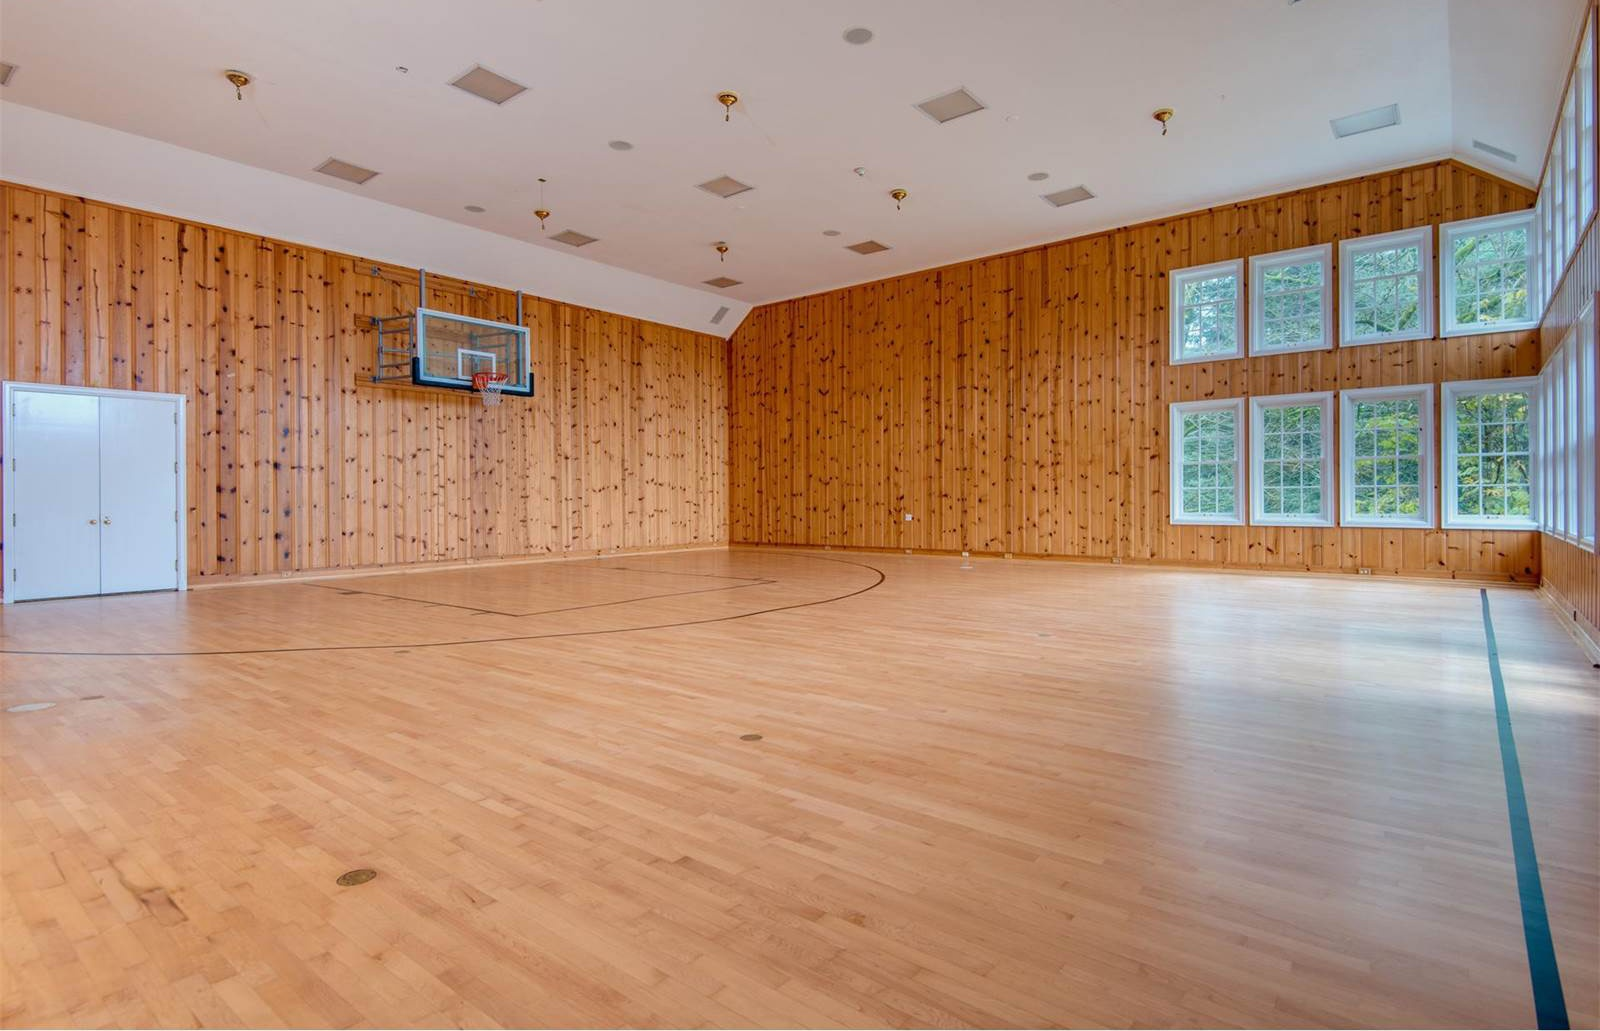 This Portland, Oregon, home features a multi-purpose indoor basketball court